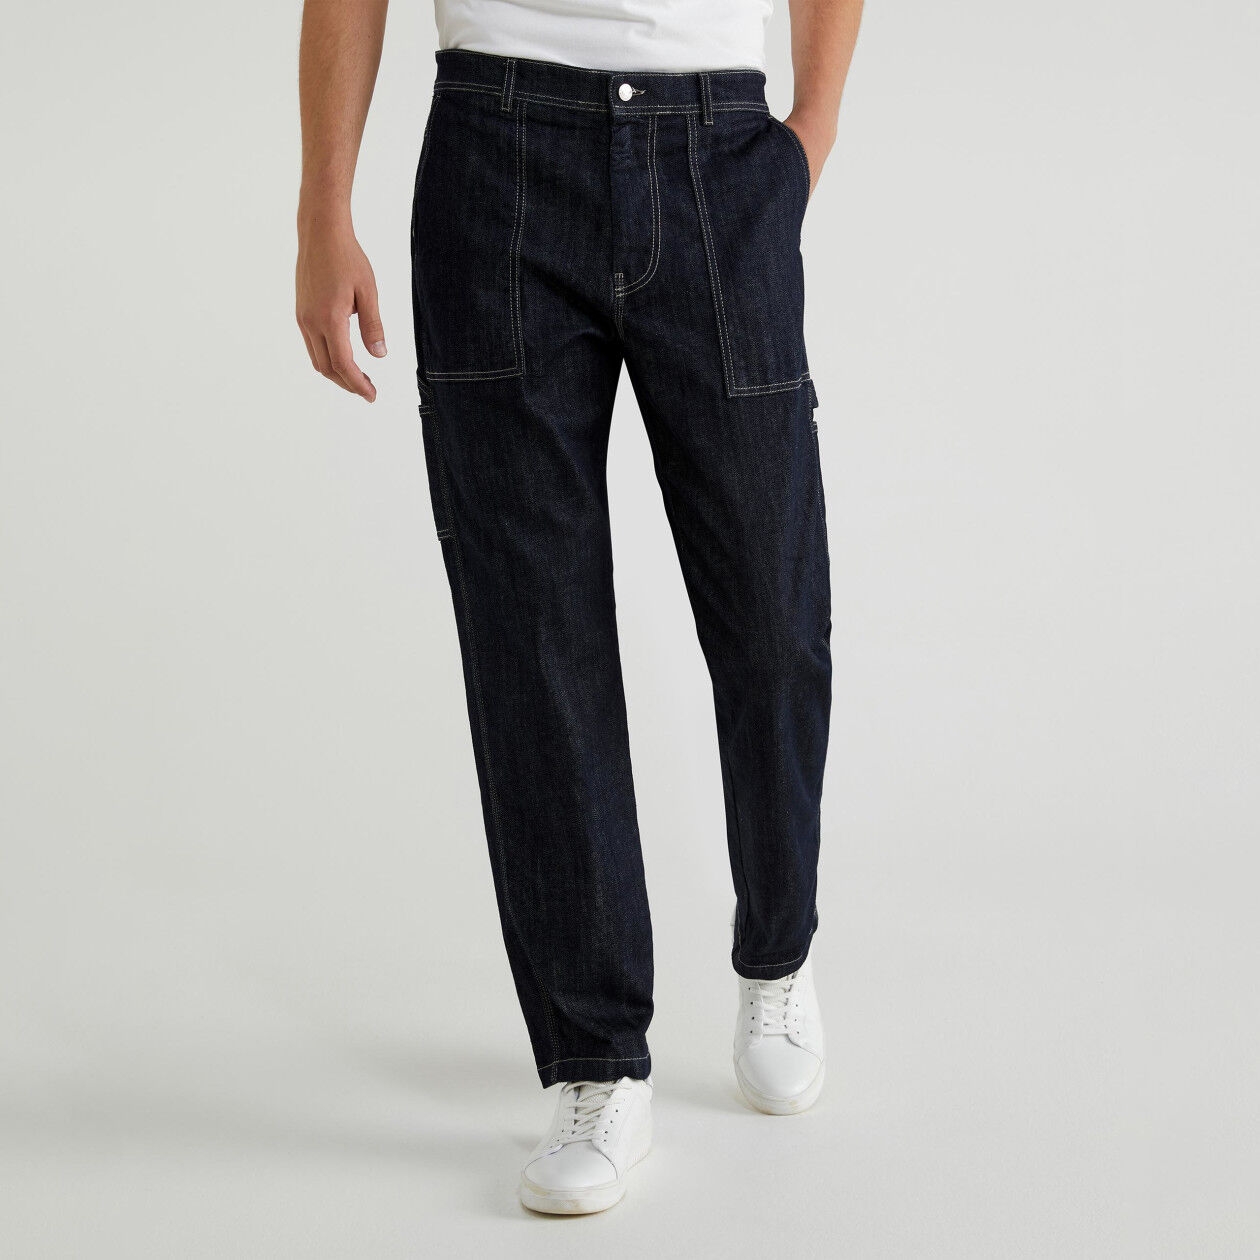 Jeans with side pockets